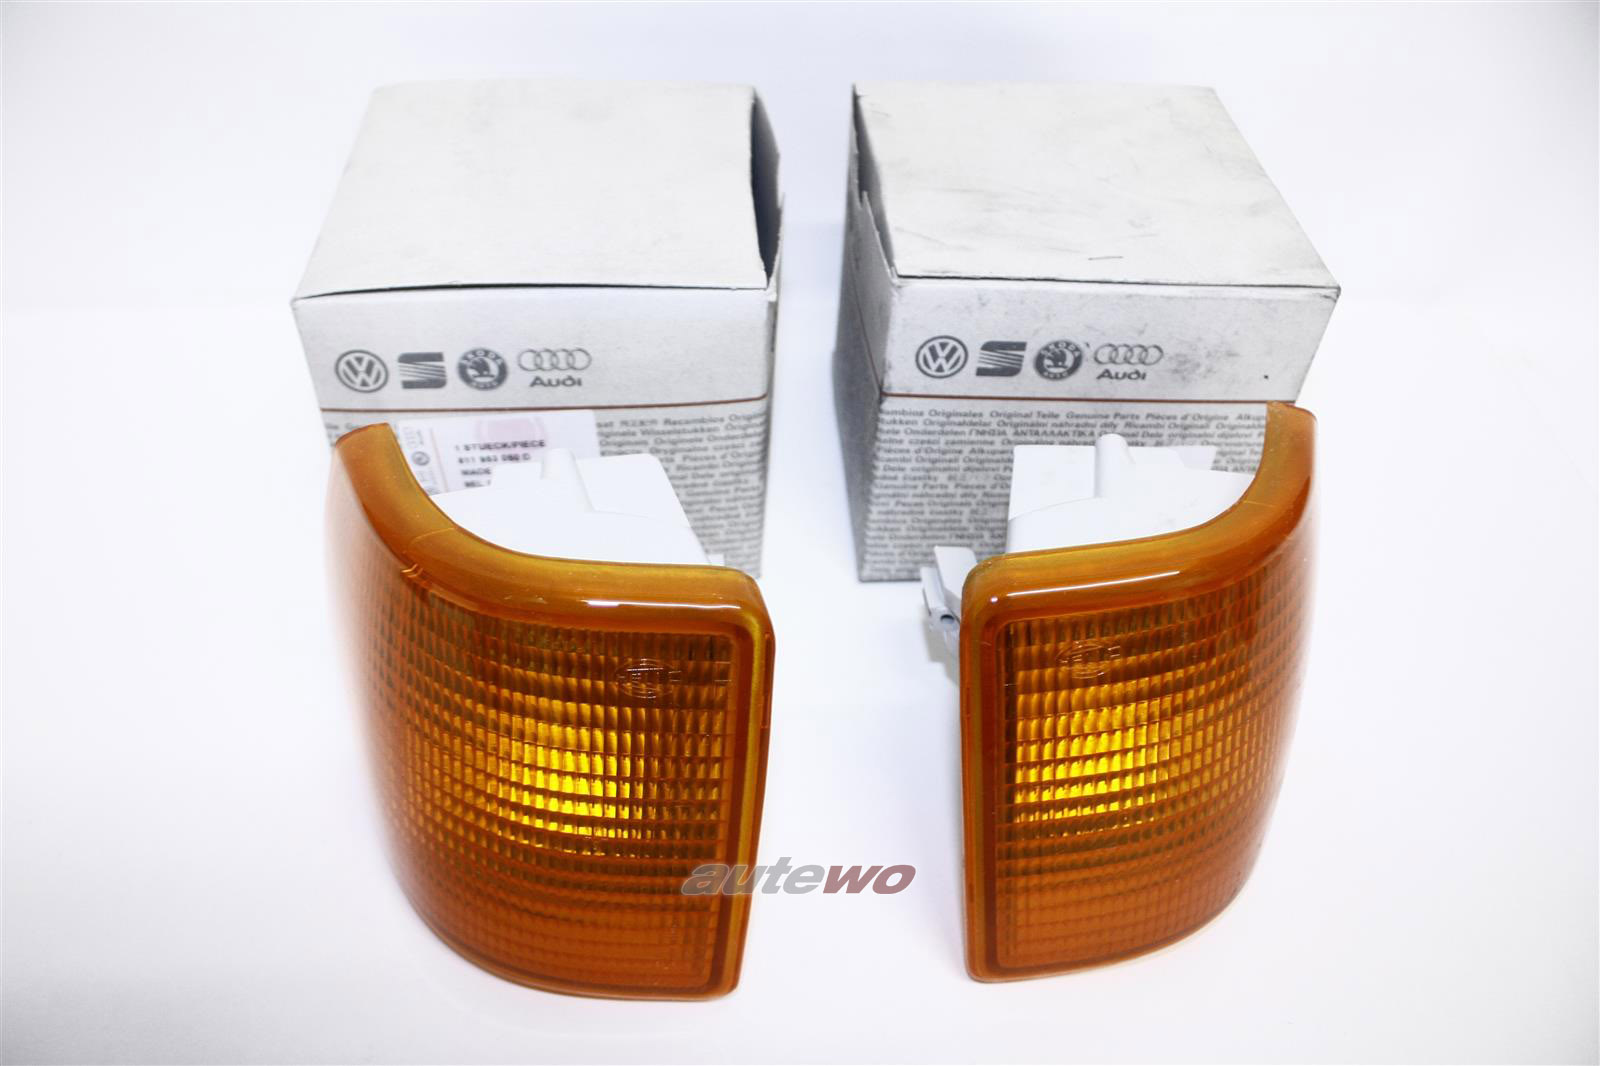 NEU! Audi 80 Typ 81 Orig. Blinker Paar Hella Li. & Re. orange 811953049D & 81195